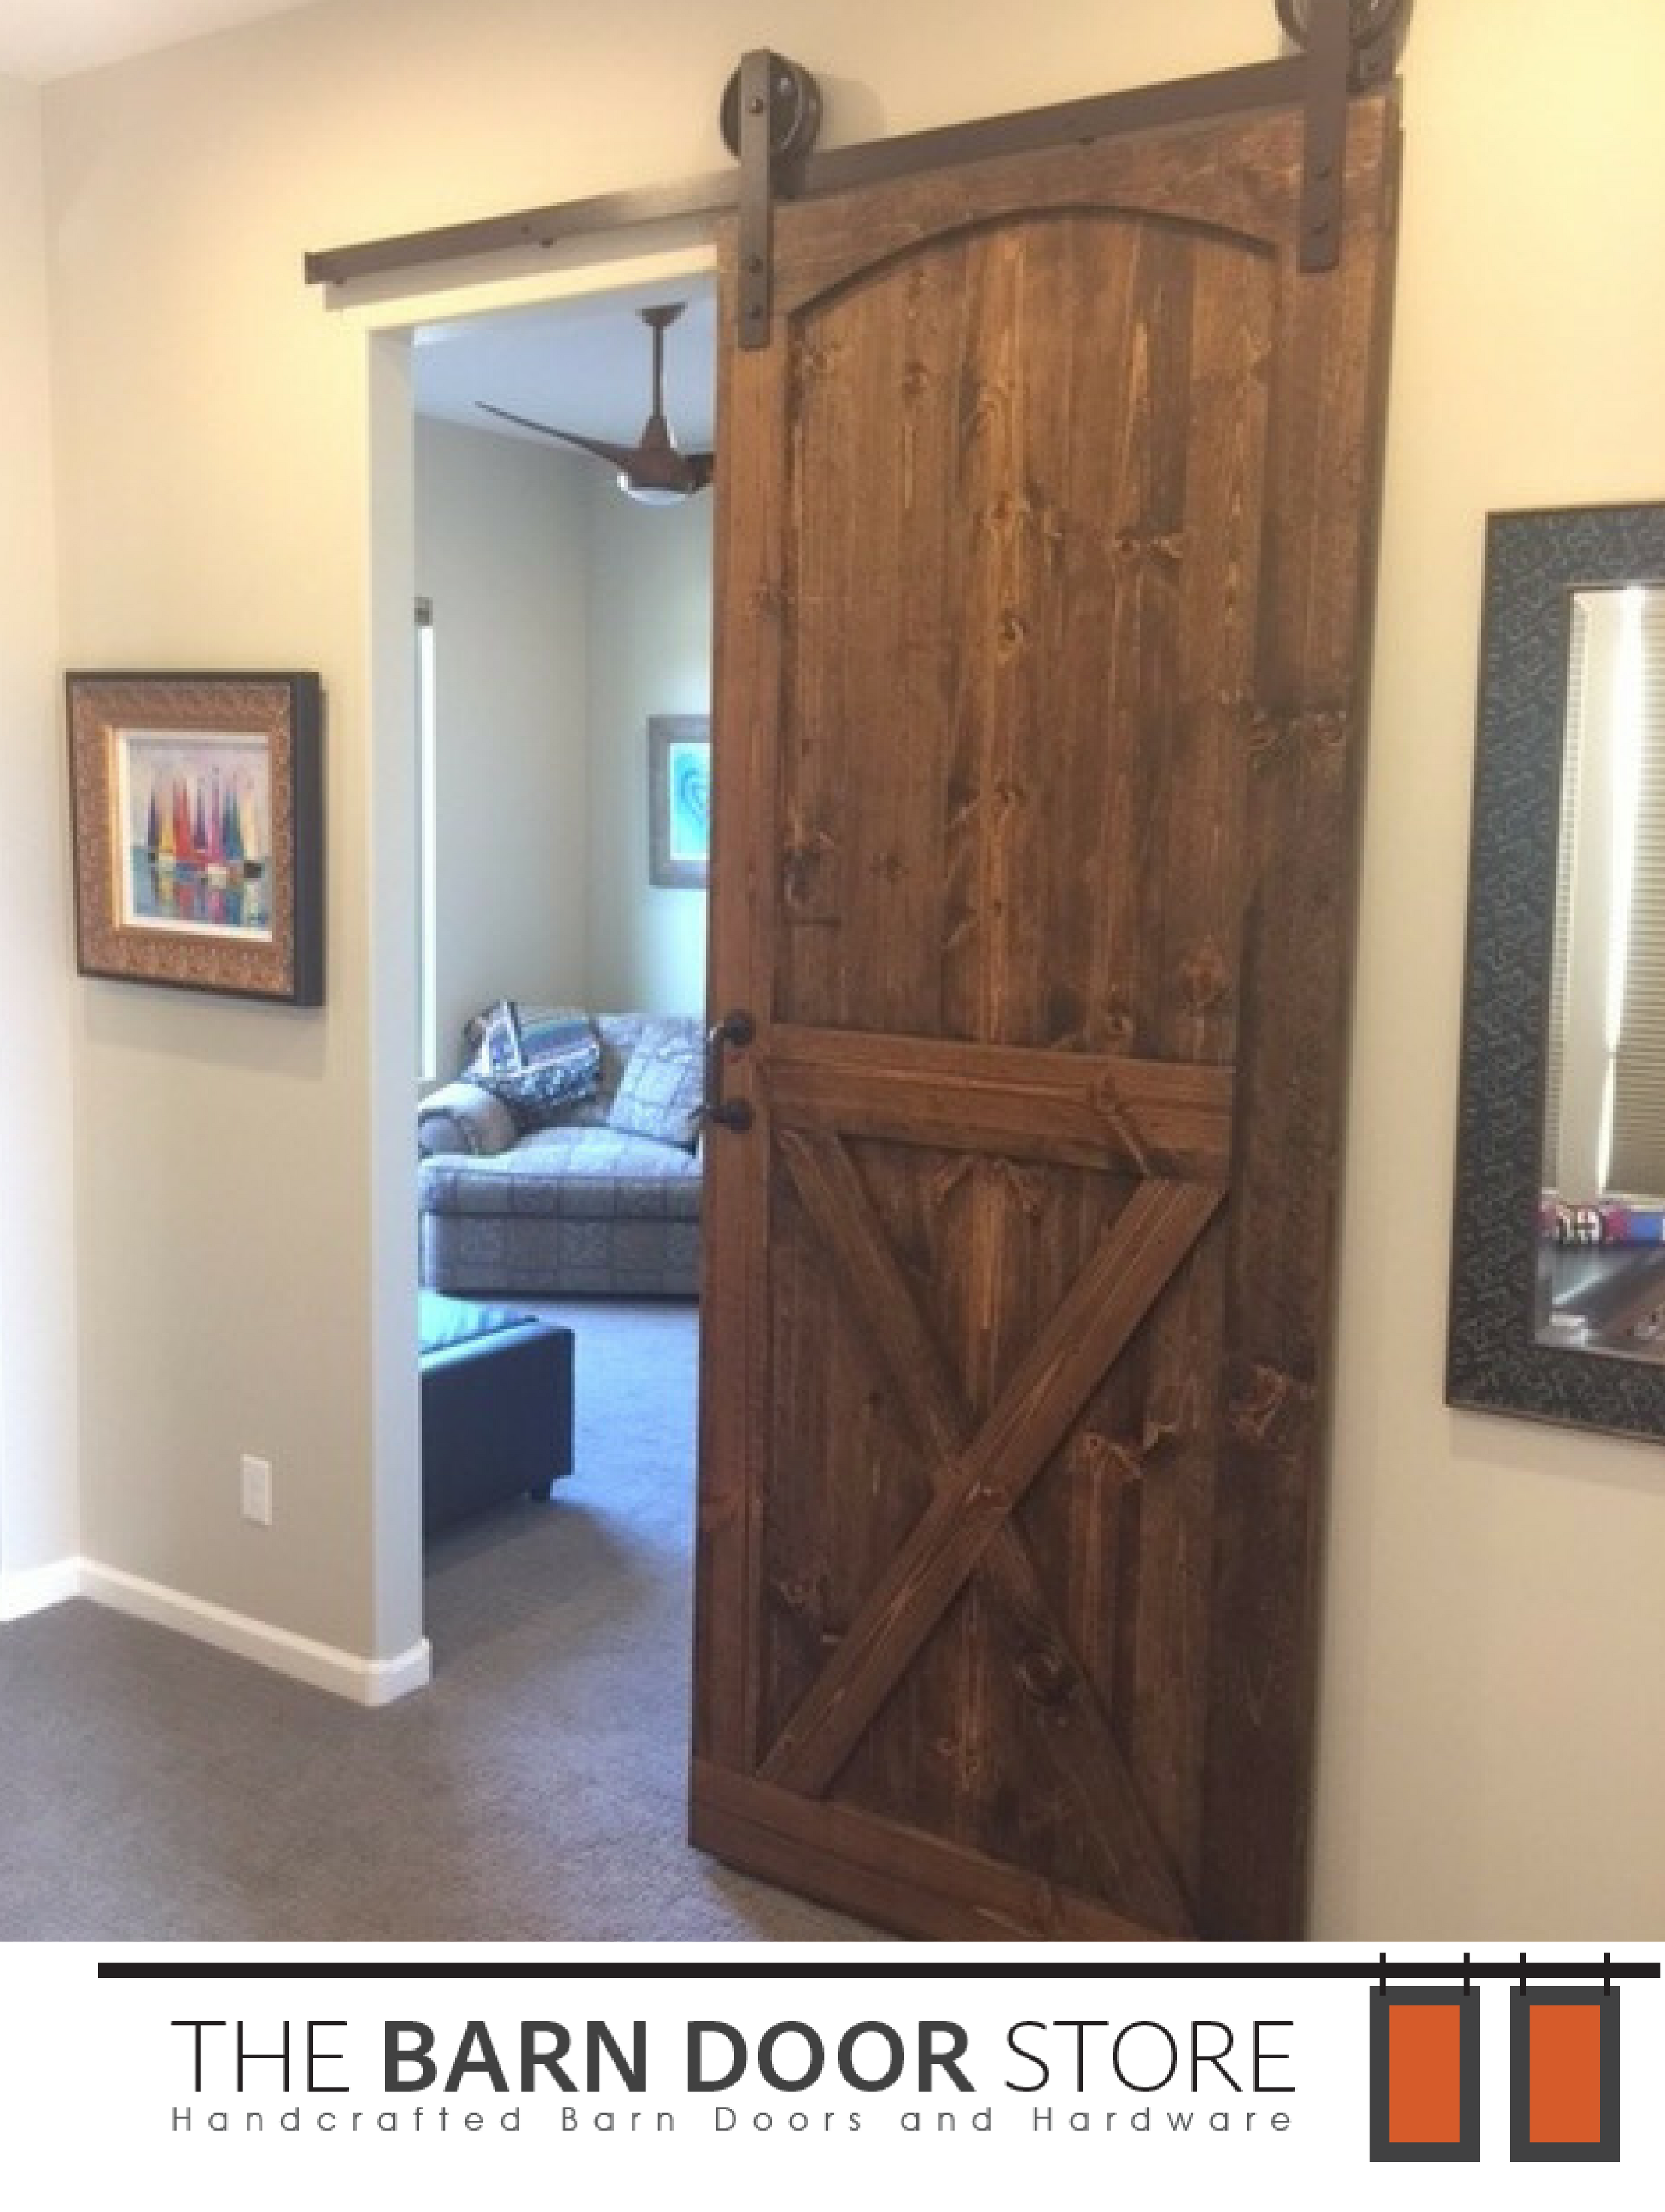 Add Some Privacy To Any Room By Adding A Beautiful Custombarndoor Door Details Eyebrow Arch Bottom X Barn Doors Sliding Barn Door Interior Barn Doors